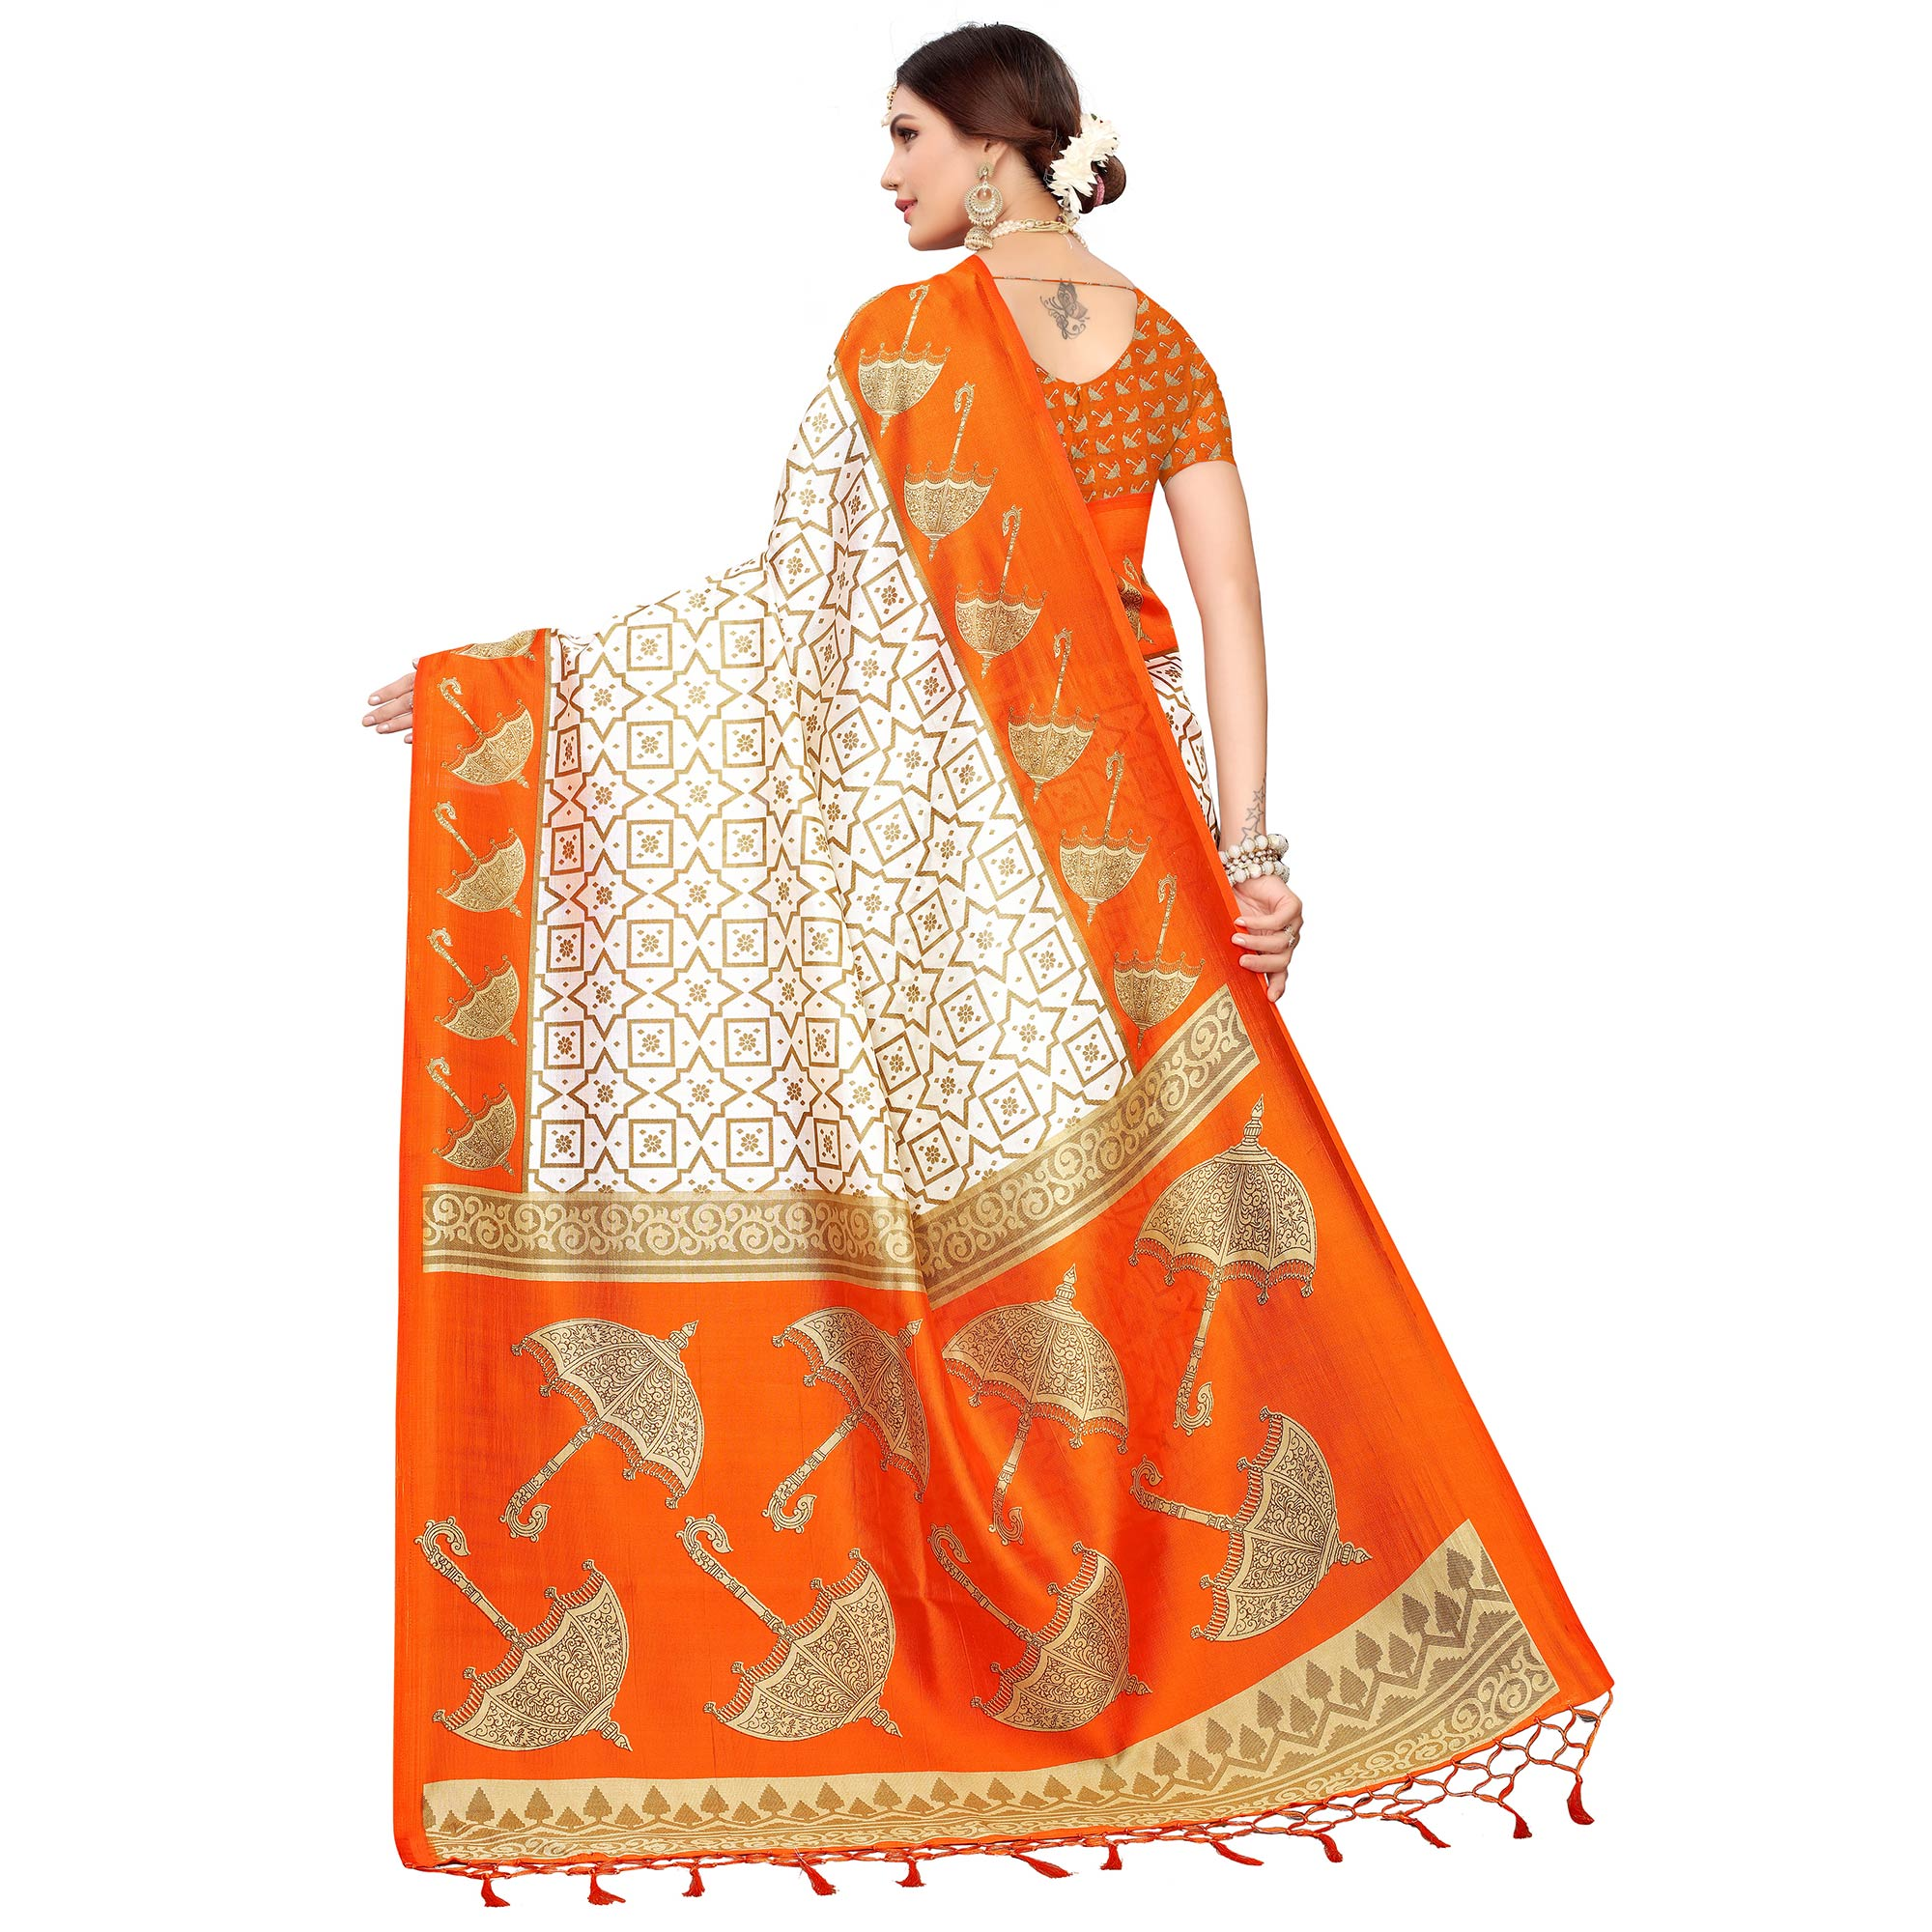 Captivating Off White-Orange Colored Festive Wear Mysore Silk Saree